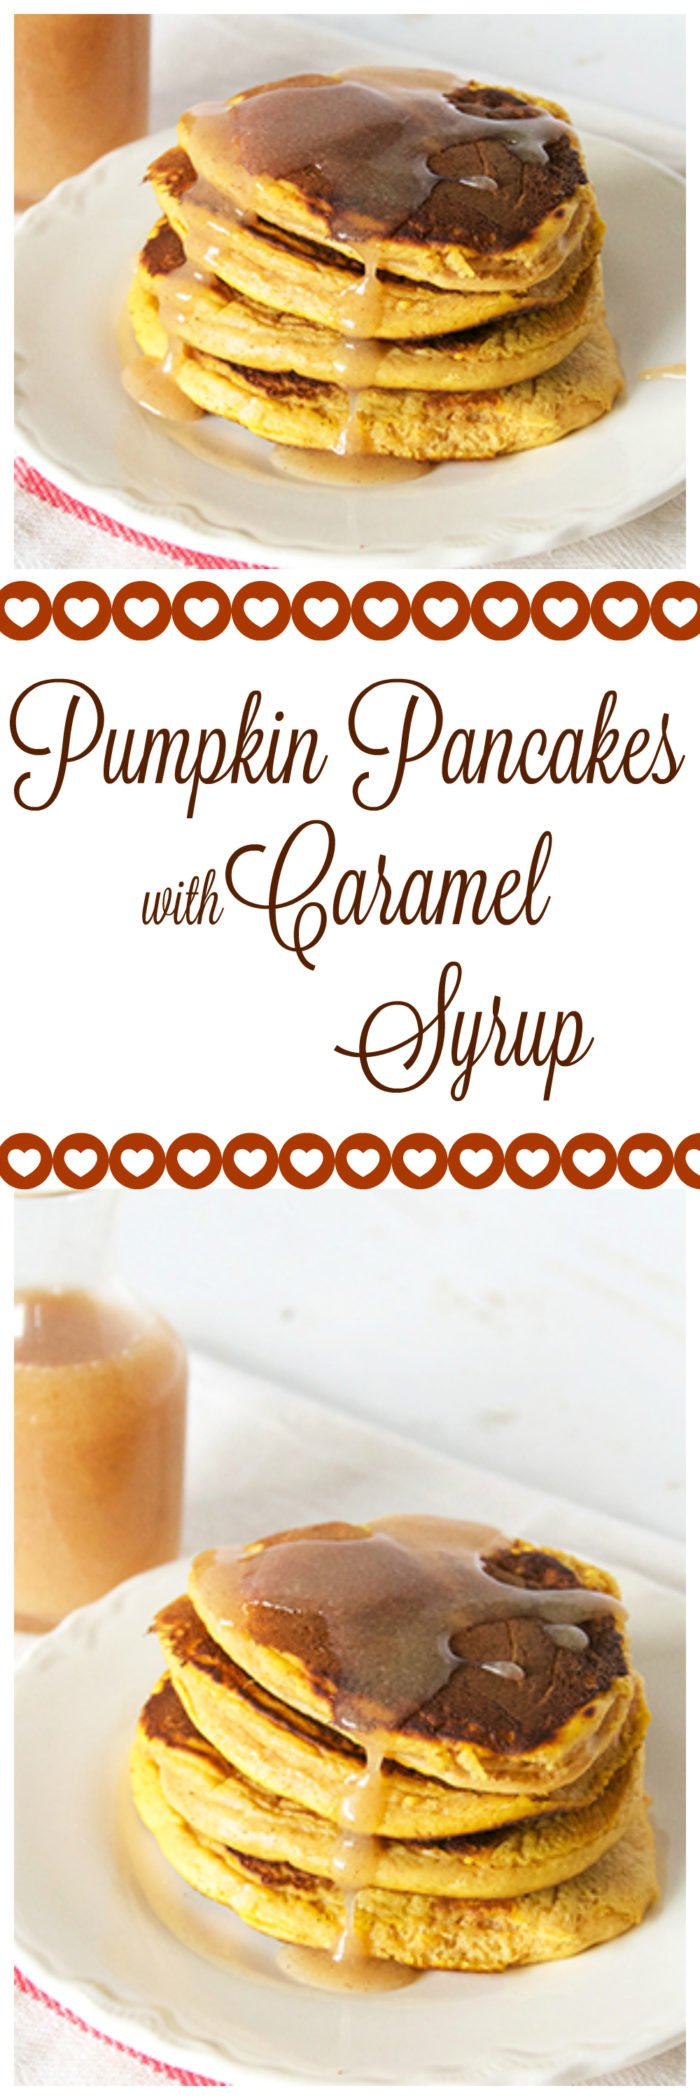 Pumpkin Pancakes with Caramel Syrup on www.cookingwithruthie.com will rock your world!  You've just gotta try them try this fall!